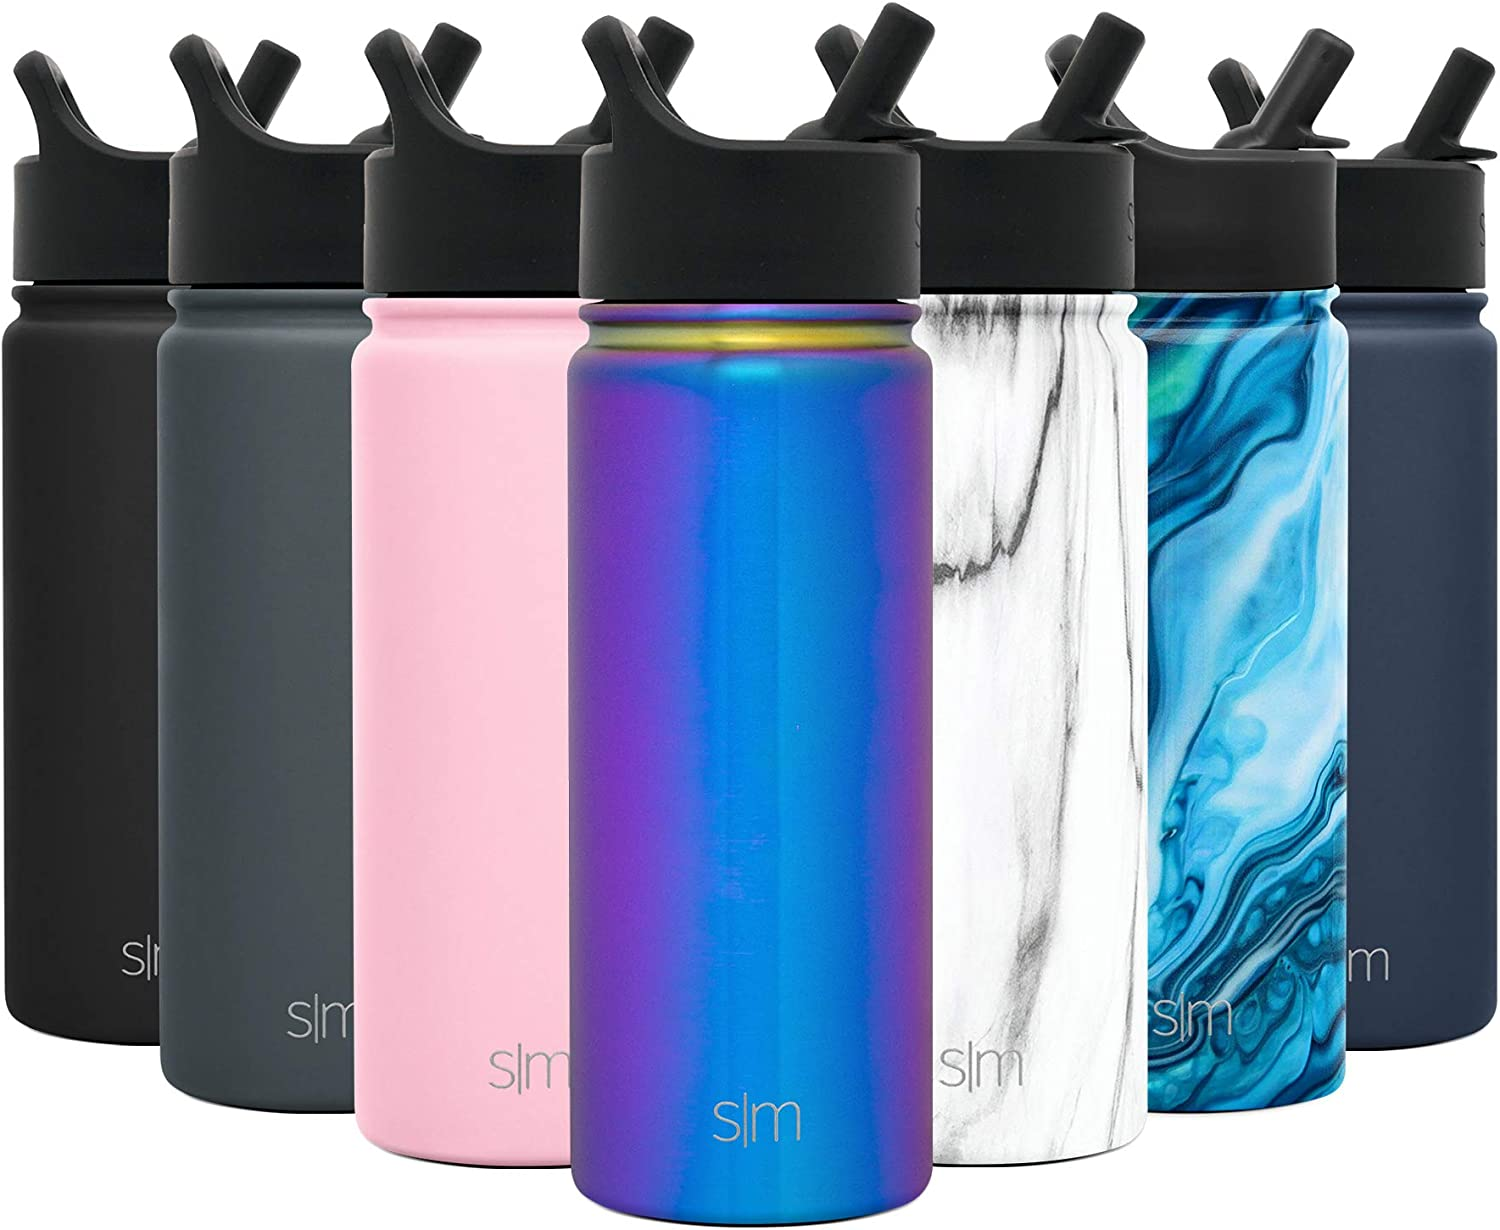 Simple Modern 14oz Summit Water Bottles with Straw Lid - Dishwasher Safe Vacuum Insulated Tumbler Double Wall Travel Mug 18/8 Stainless Steel Flask - Prism